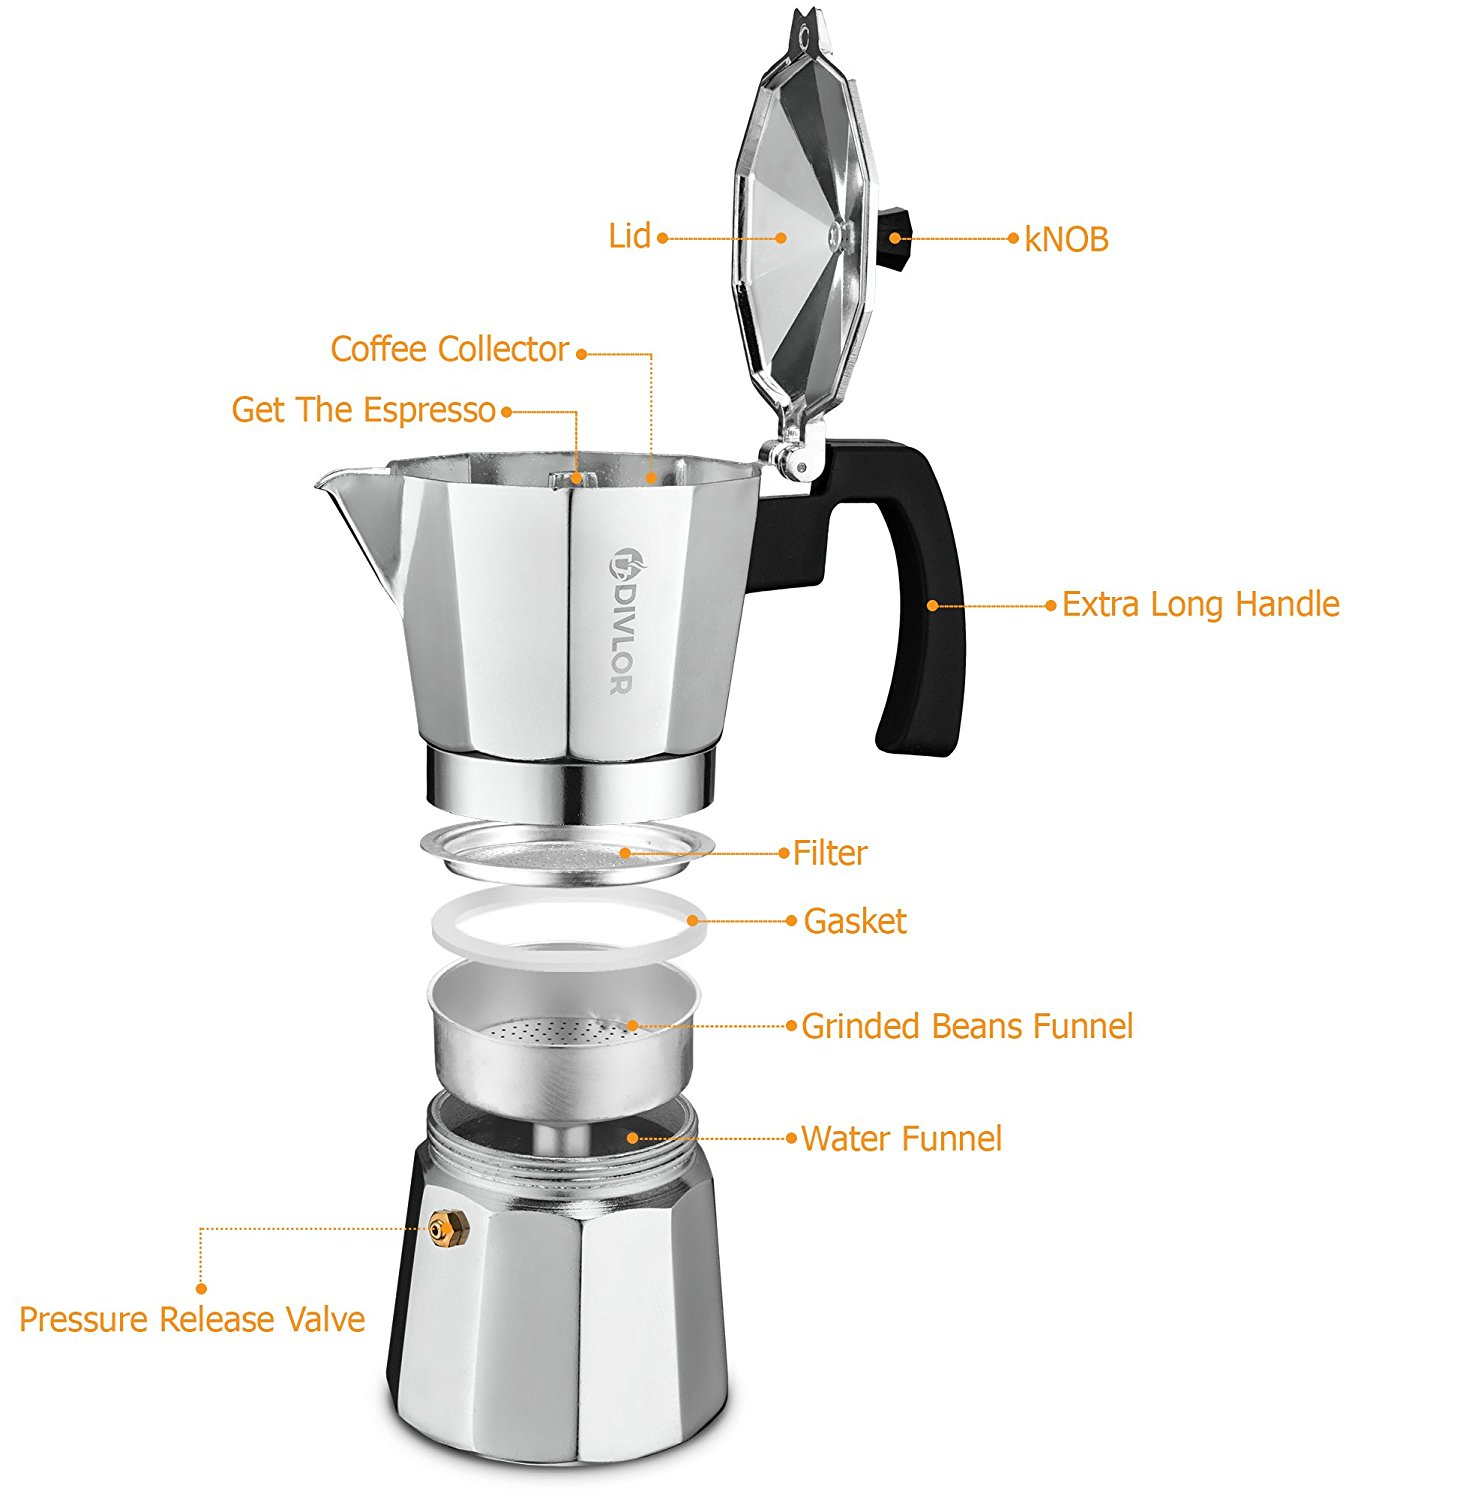 bialetti maker instructions